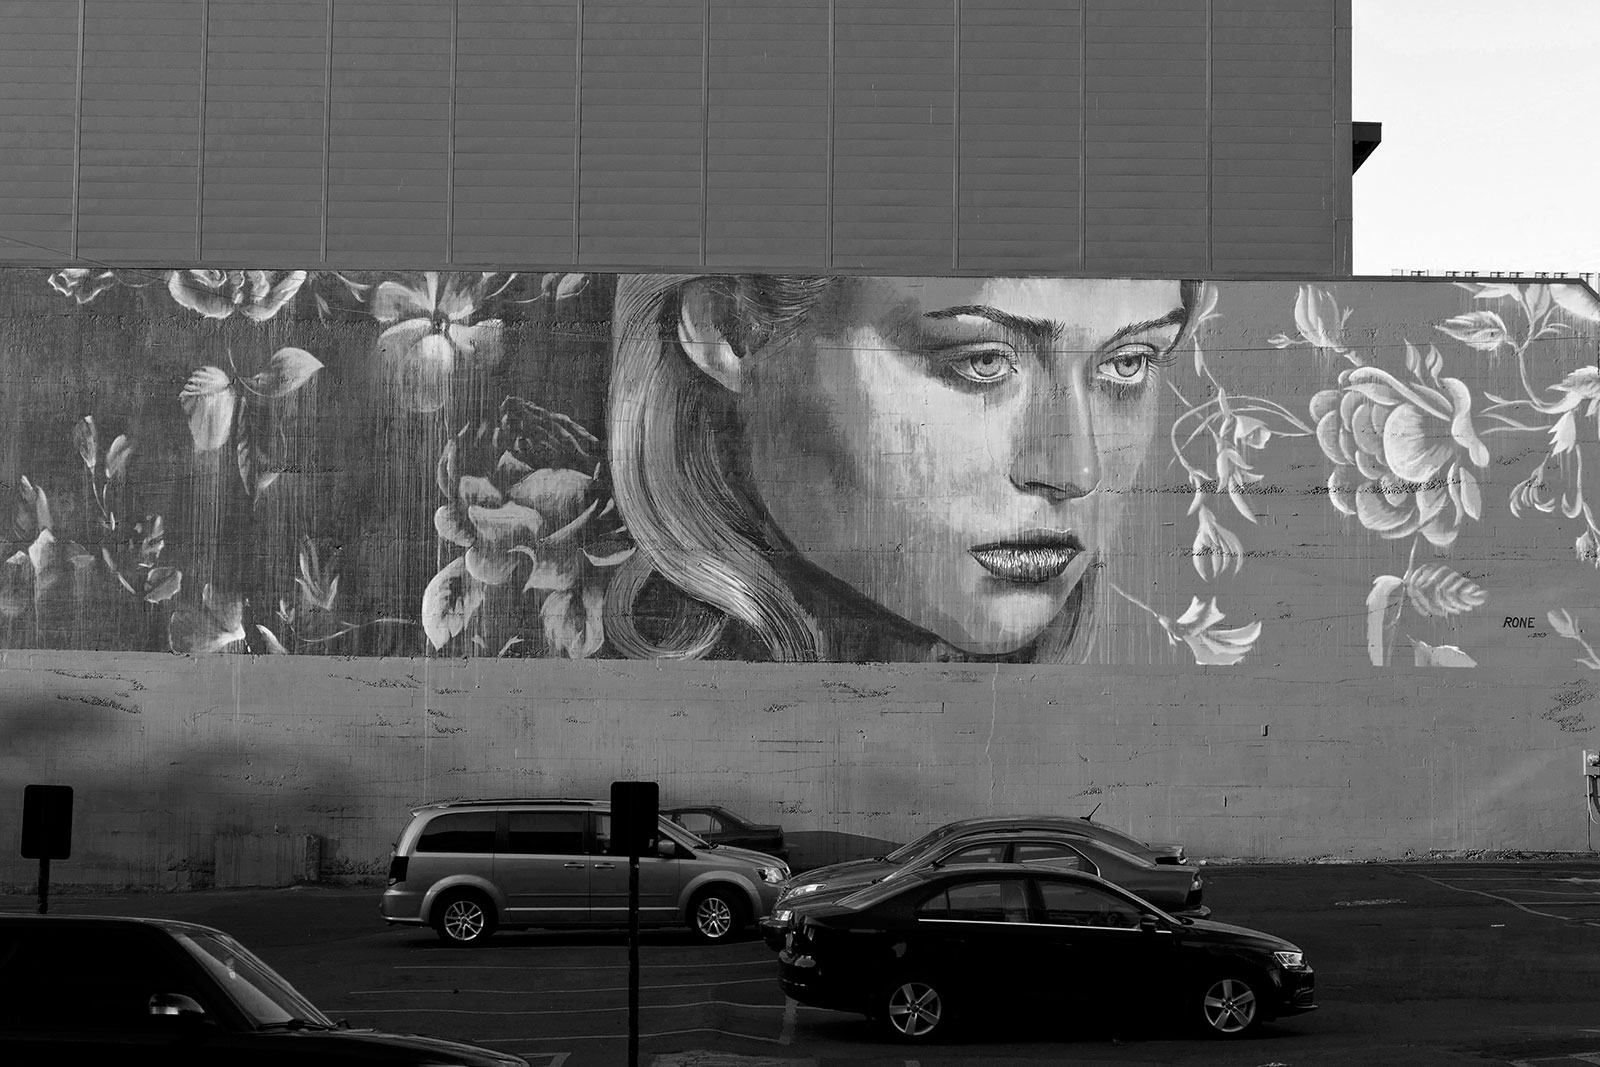 2013 Mural by Rone courtesy of Forest for the Trees